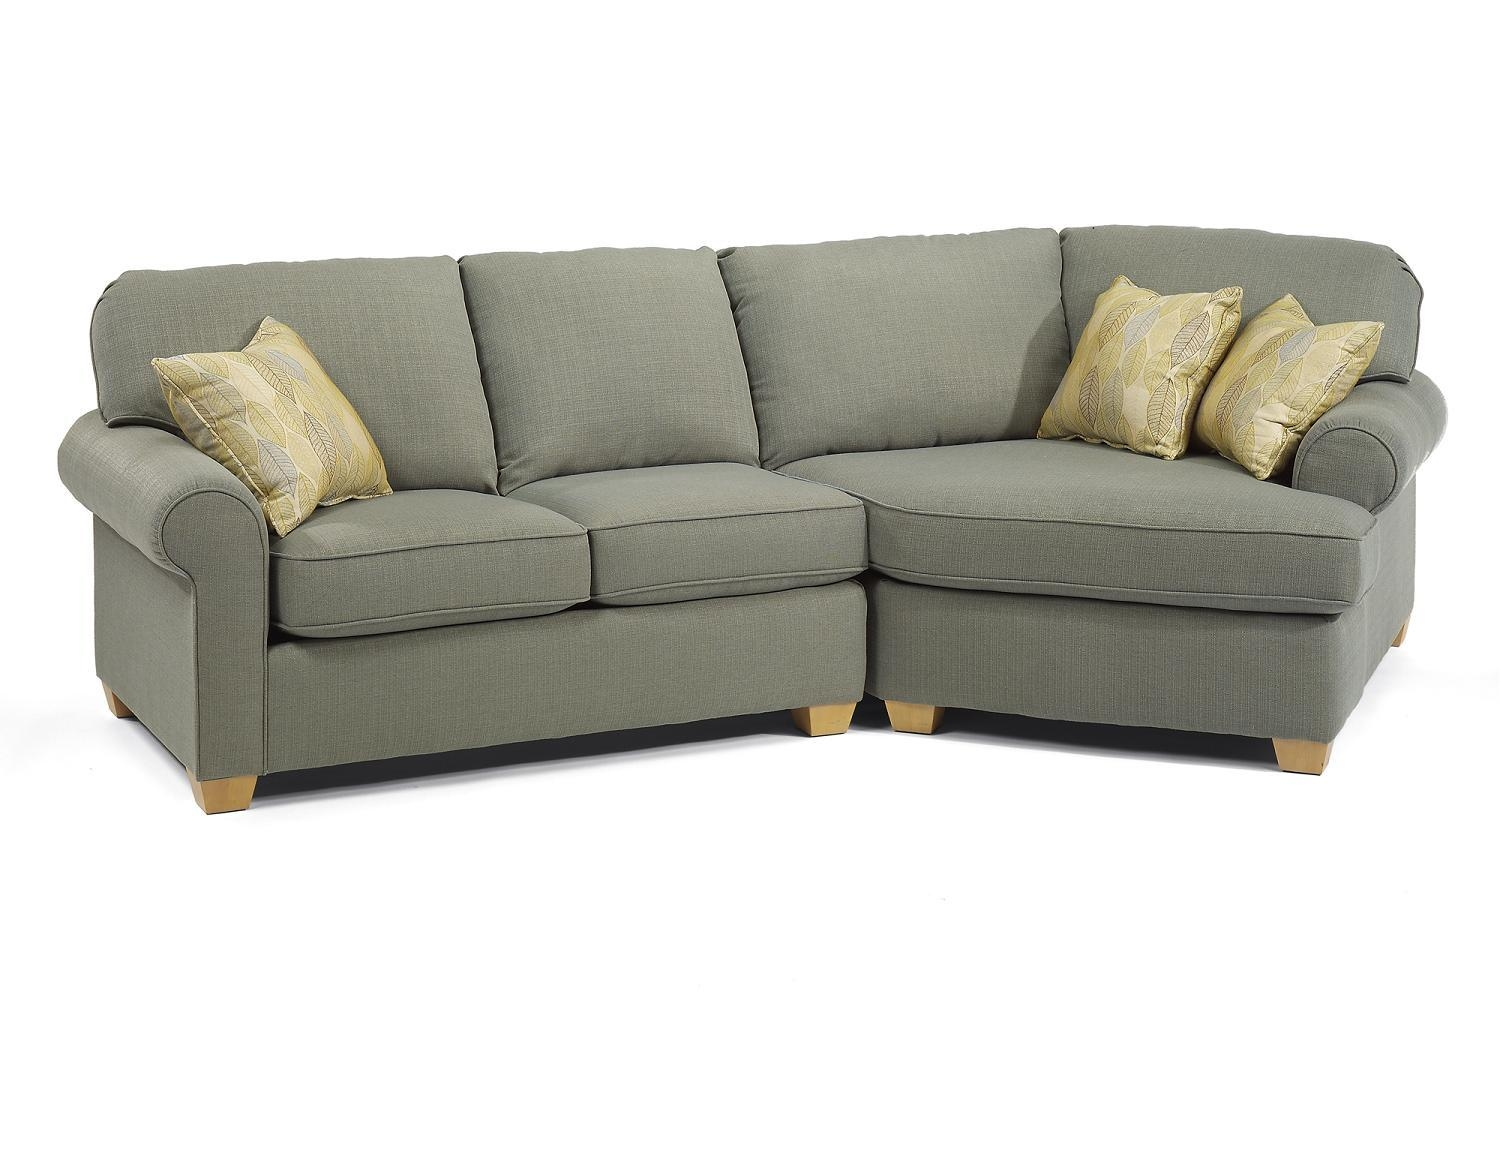 Small Sectional Sofa (Image 14 of 20)